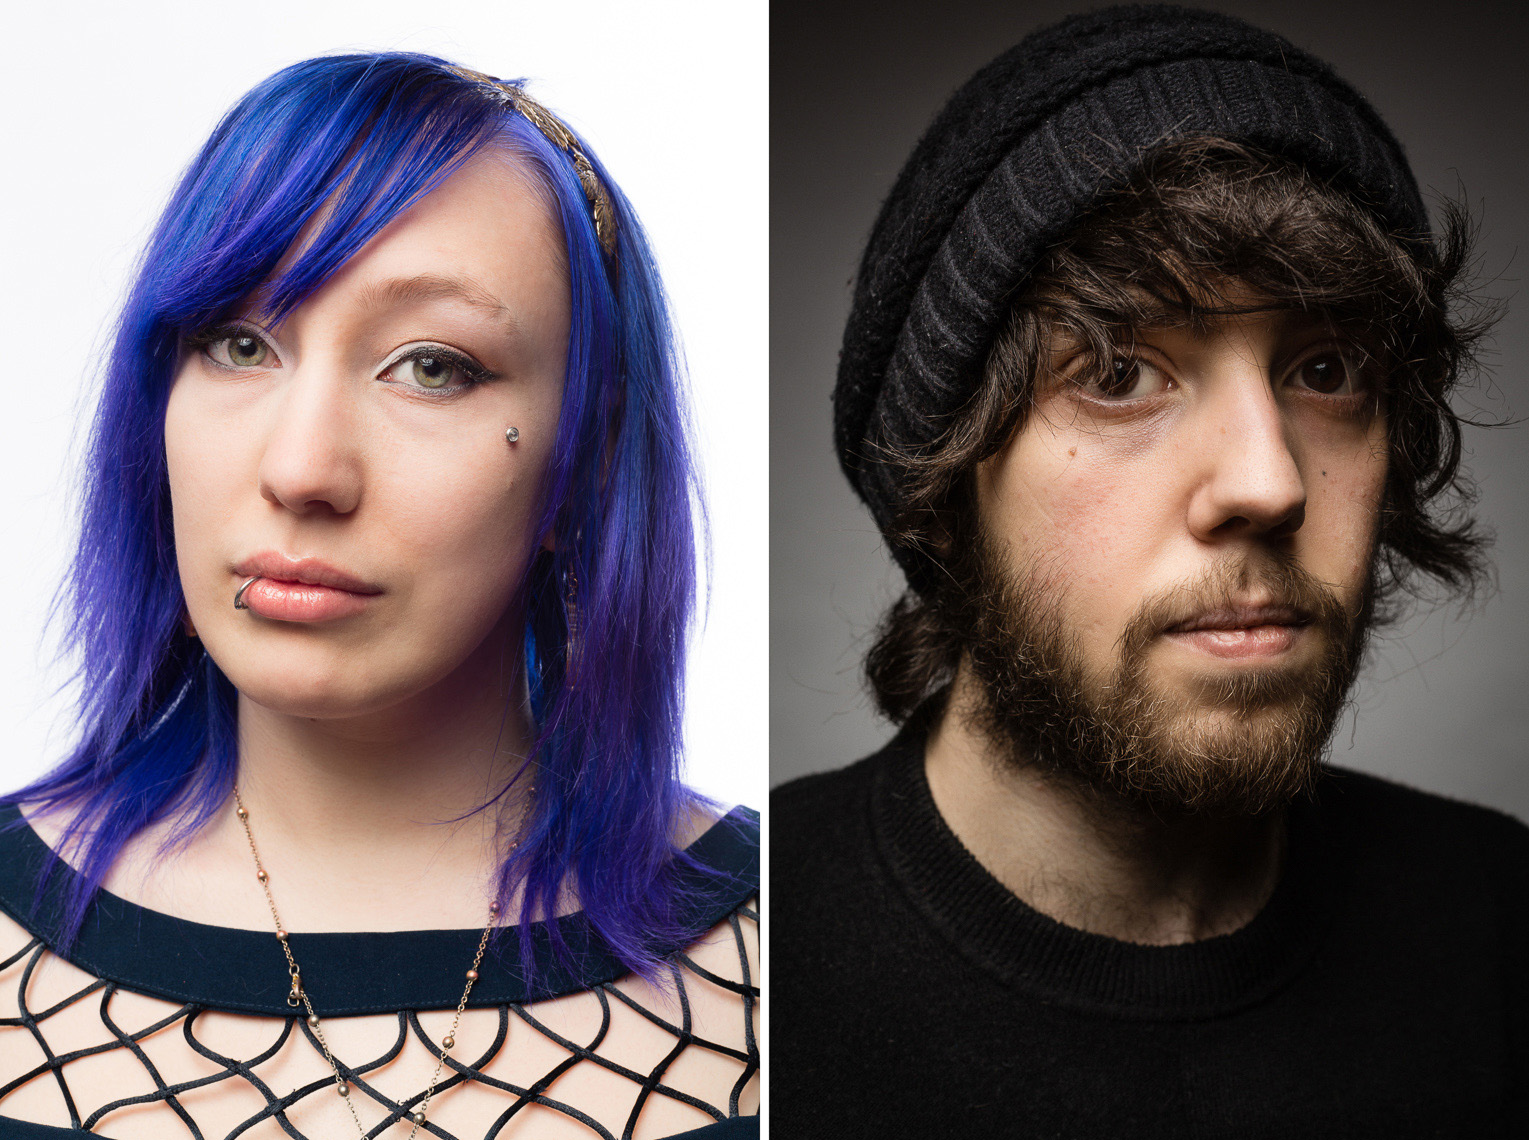 Zoe Quinn & Eron Gjoni, Gamergate for Boston Magazine • Jason Grow Photography